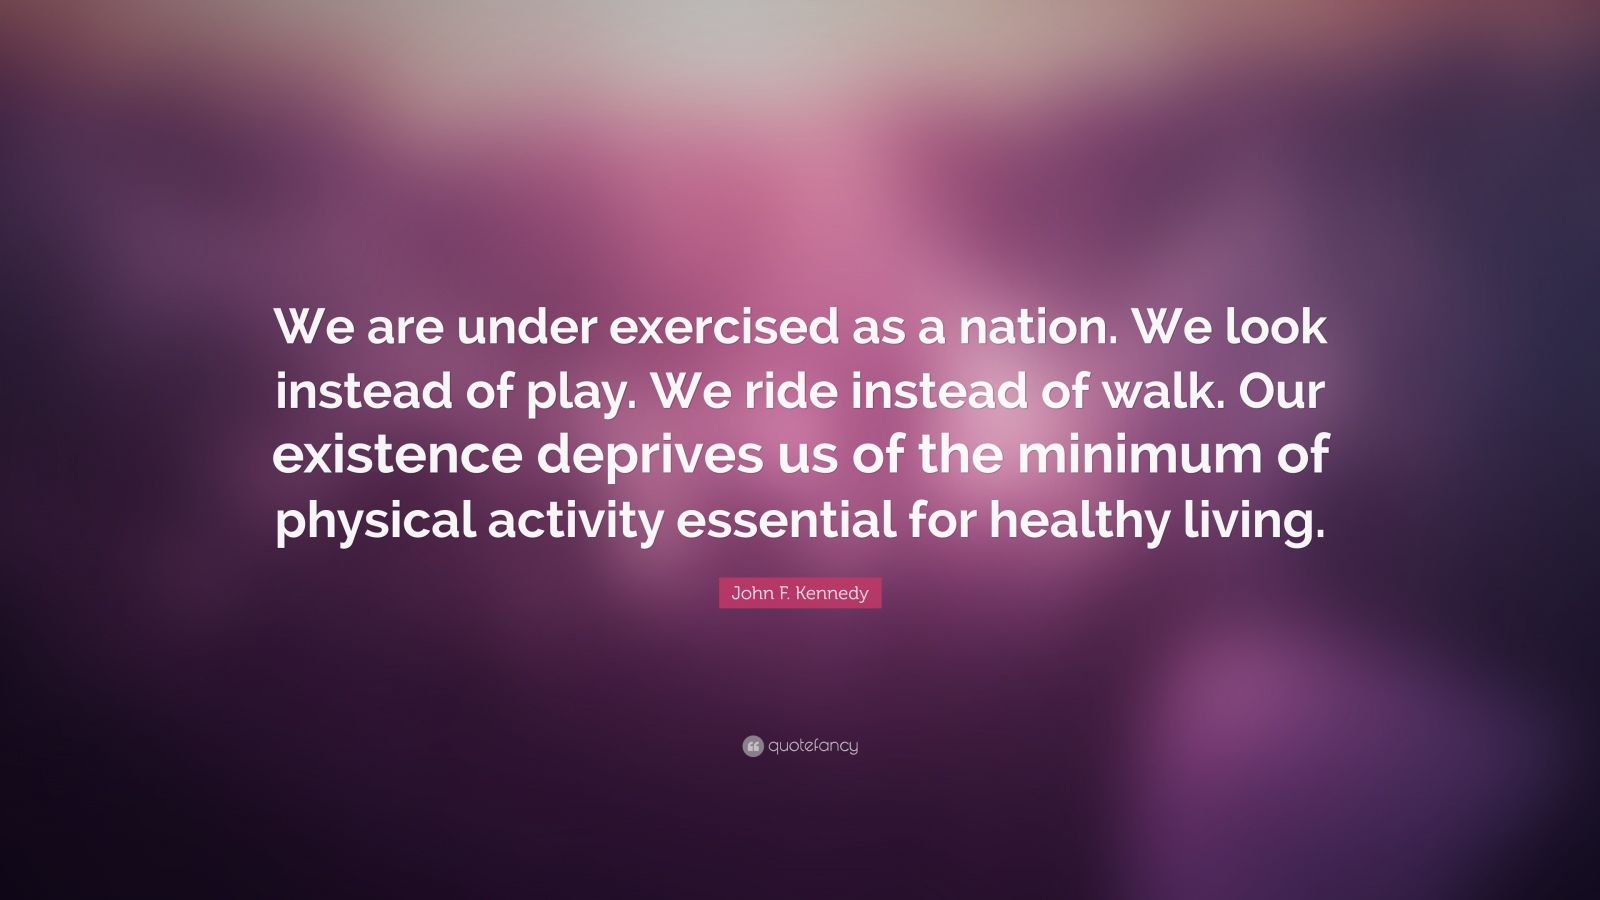 """John F. Kennedy Quote: """"We are under exercised as a nation. We look instead of play. We ride instead of walk. Our existence deprives us of the minimum of physical activity essential for healthy living."""""""